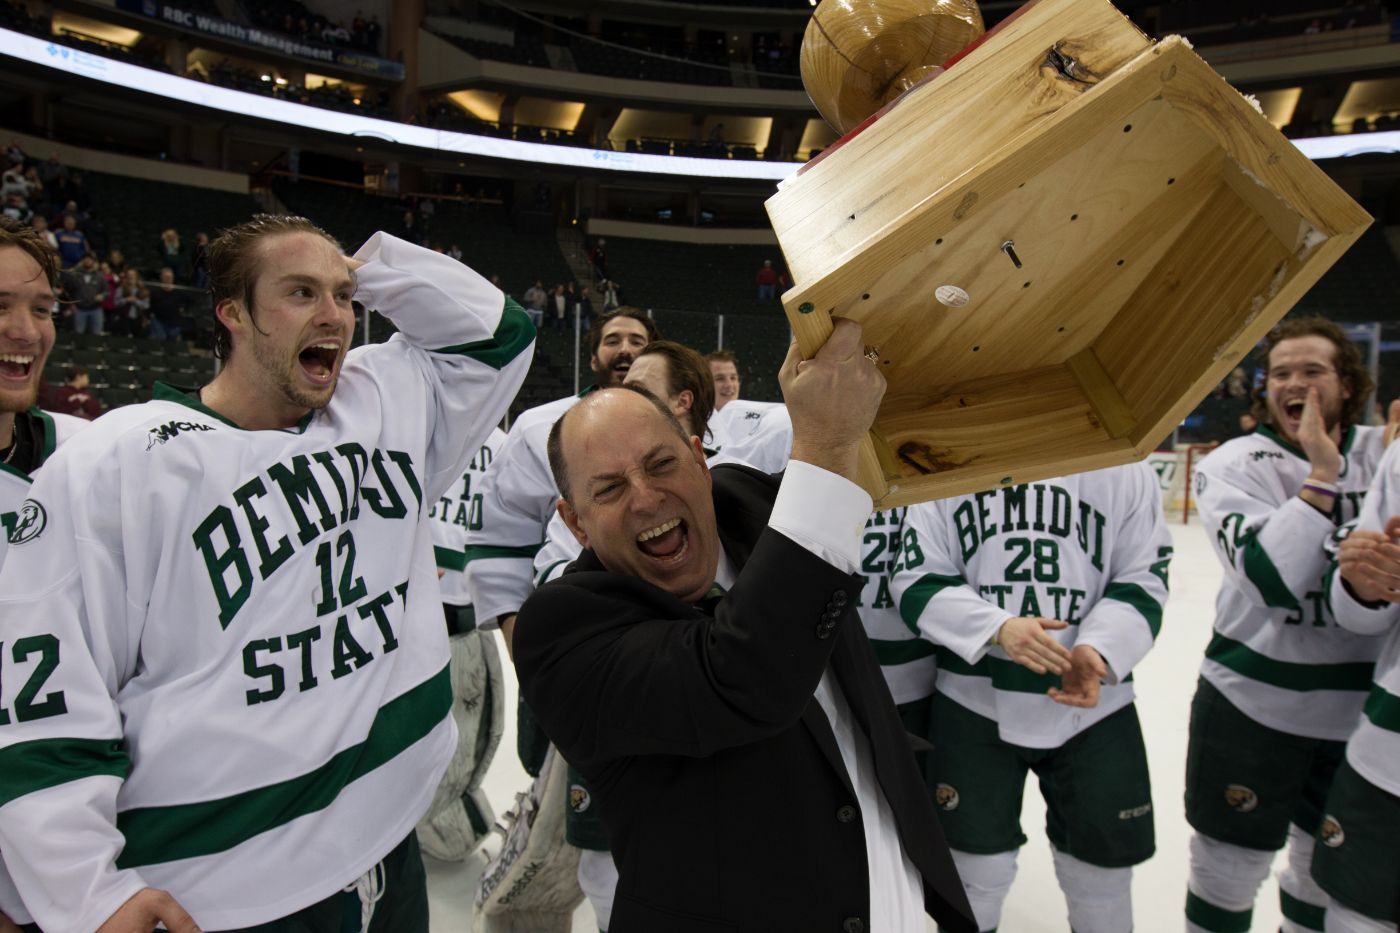 Bemidji State looks to defend NSCC title this weekend